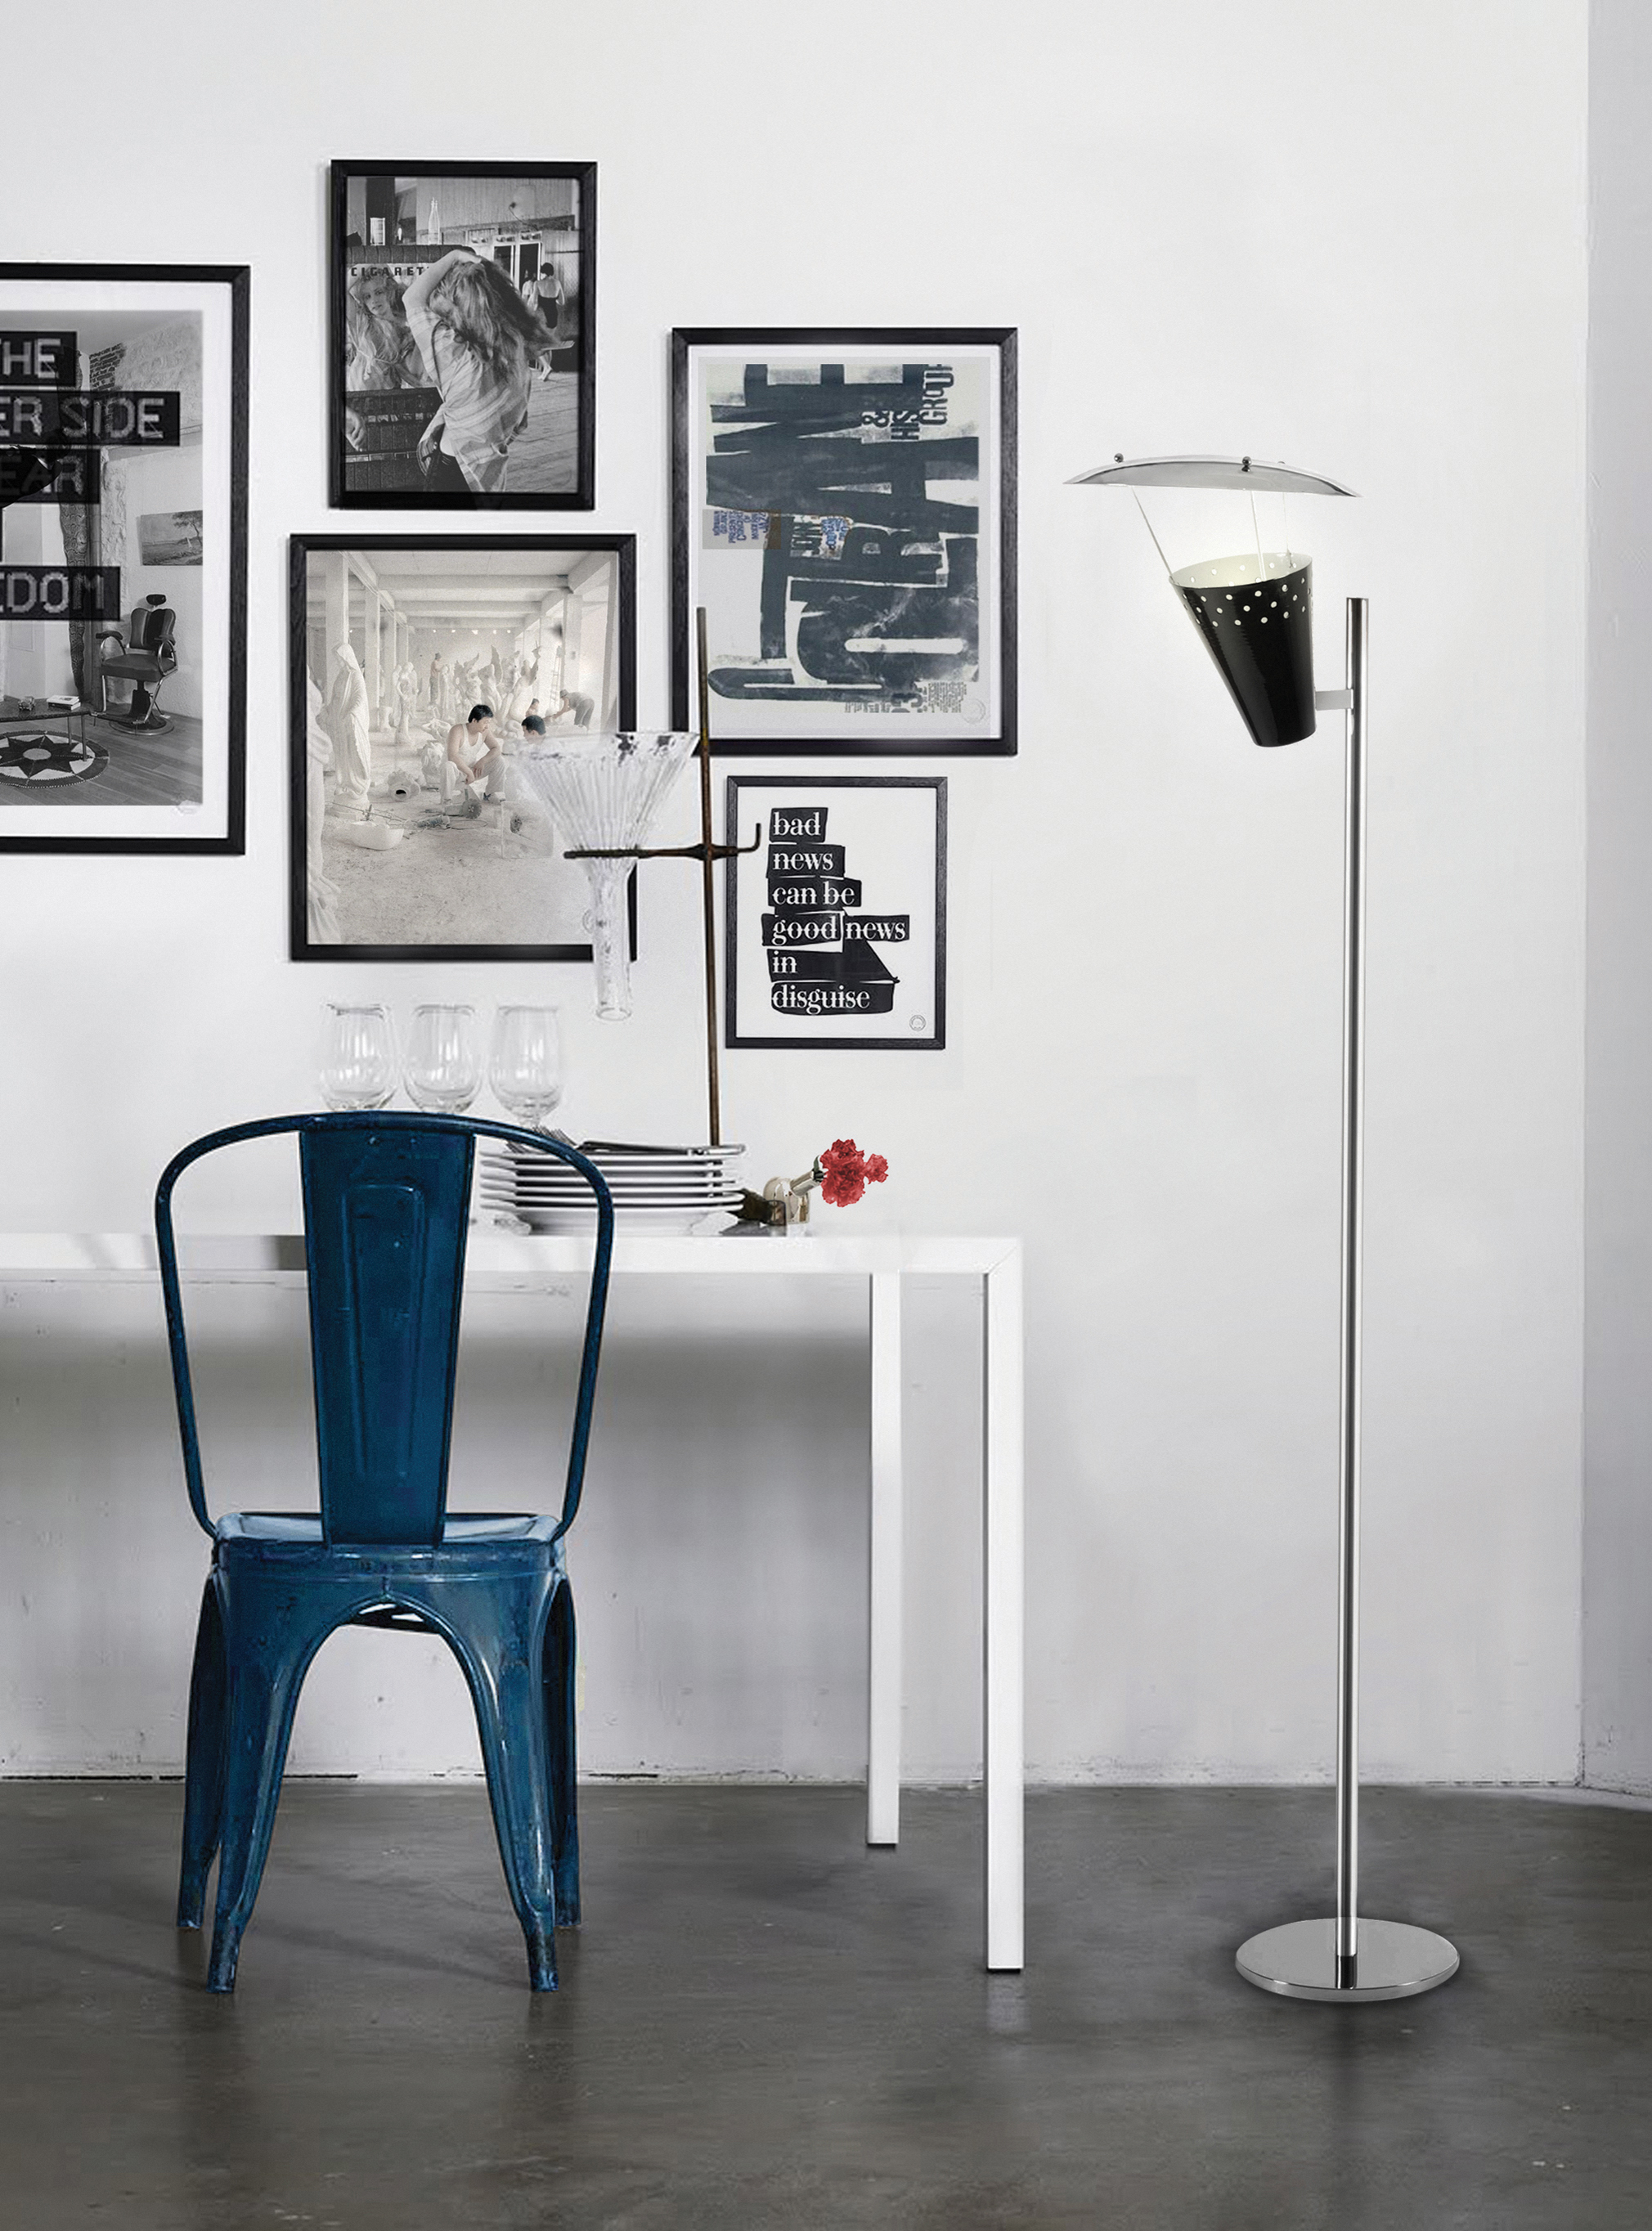 5 Modern Floor Lamps For Modern, Stylish Home Design 5 modern floor lamps 5 Modern Floor Lamps For Modern, Stylish Home Design 5 Modern Floor Lamps For Modern Stylish Home Design 5